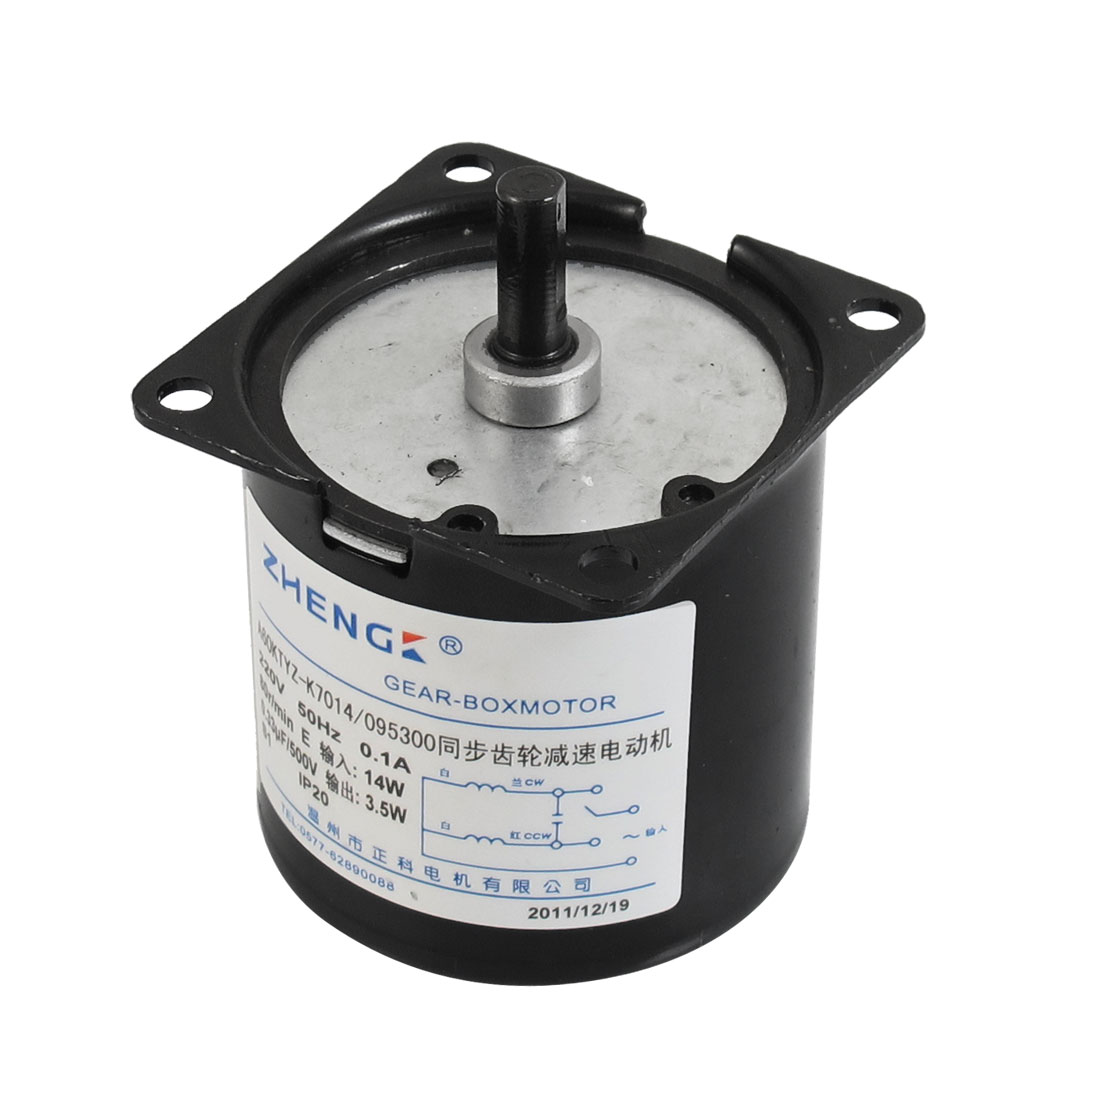 80r/min Speed 60mm Dia Synchronous Reduction Geared Motor 220VAC 0.1A